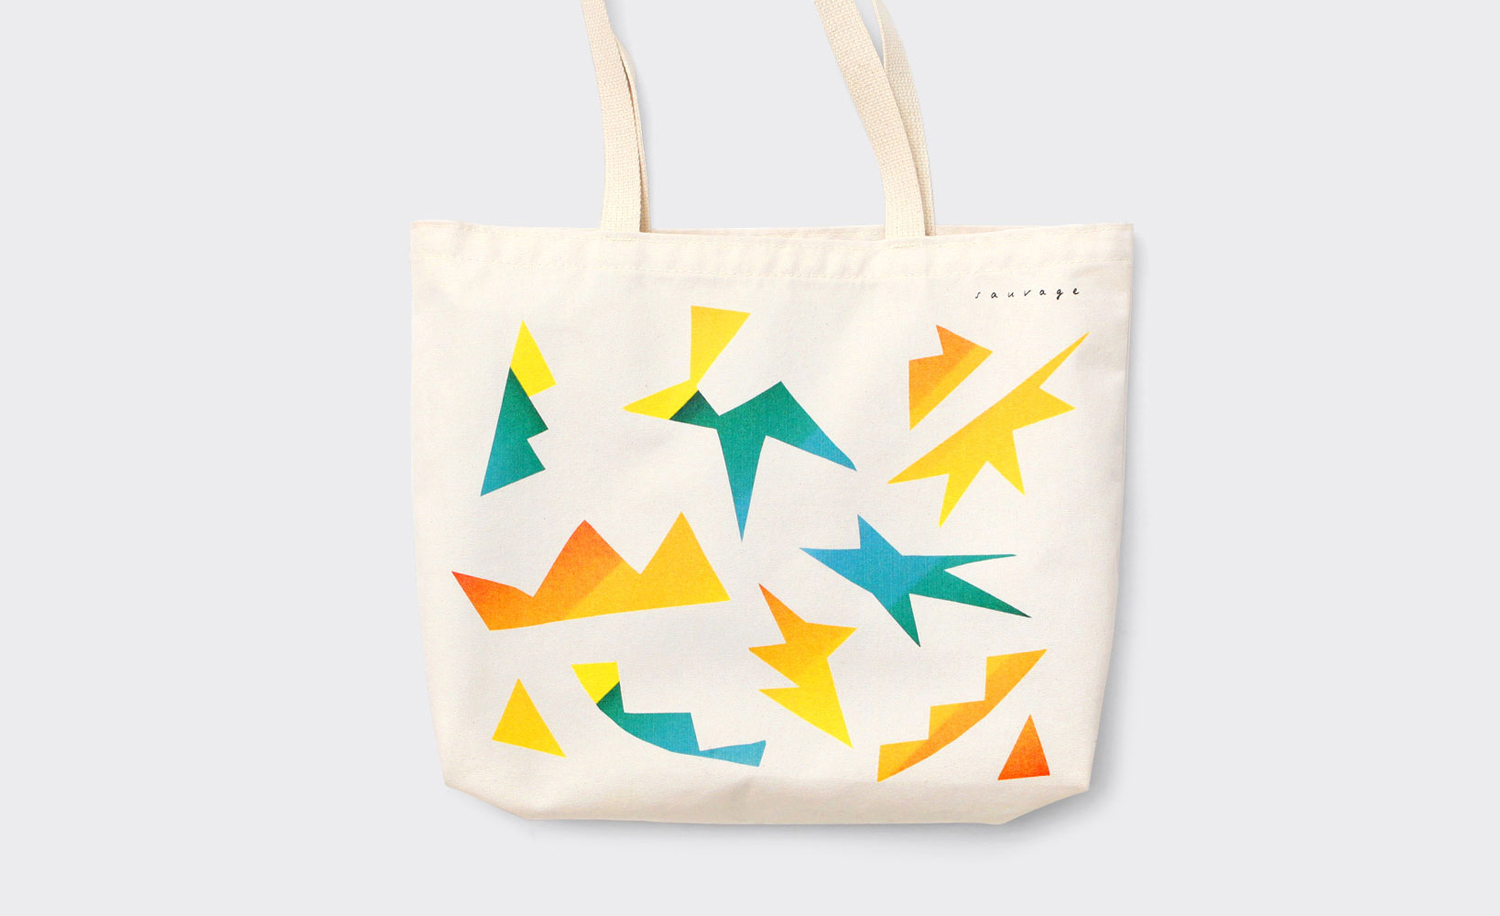 Brand identity and tote bag by New York design studio Triboro for Brooklyn cafe and bar Sauvage